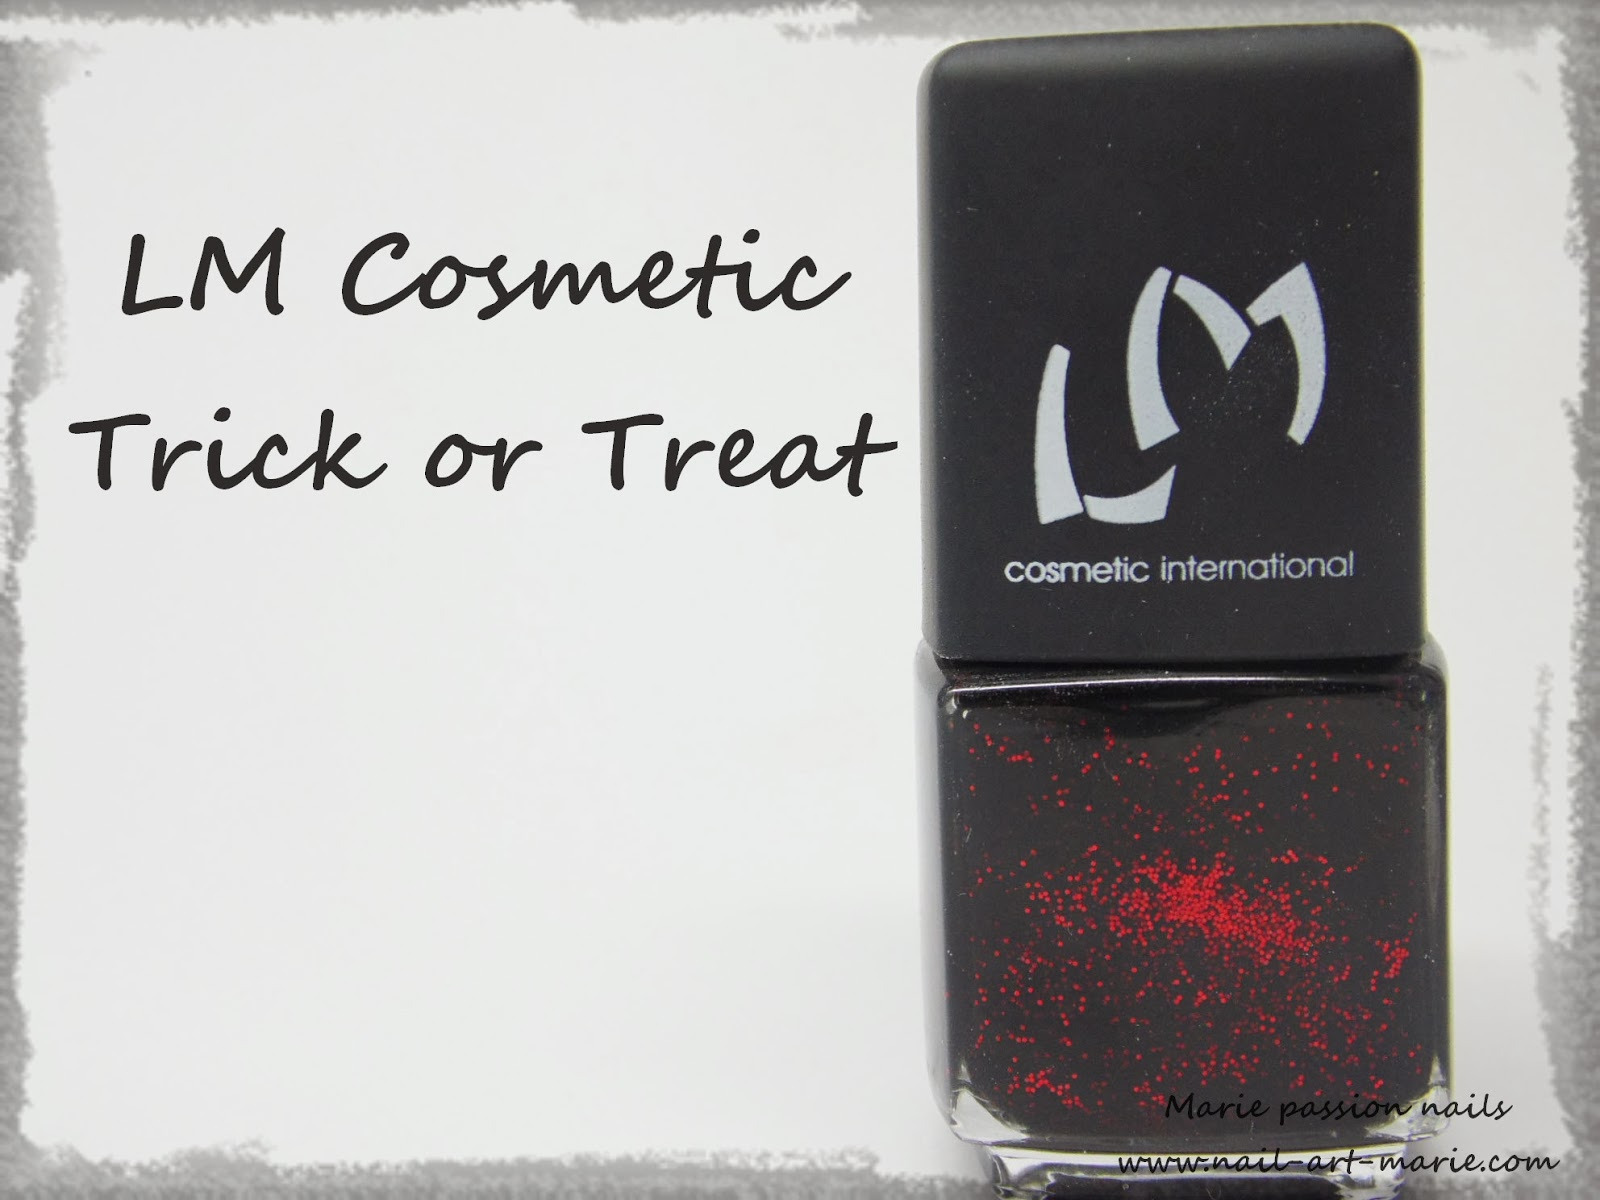 LM Cosmetic Trick or Treat1